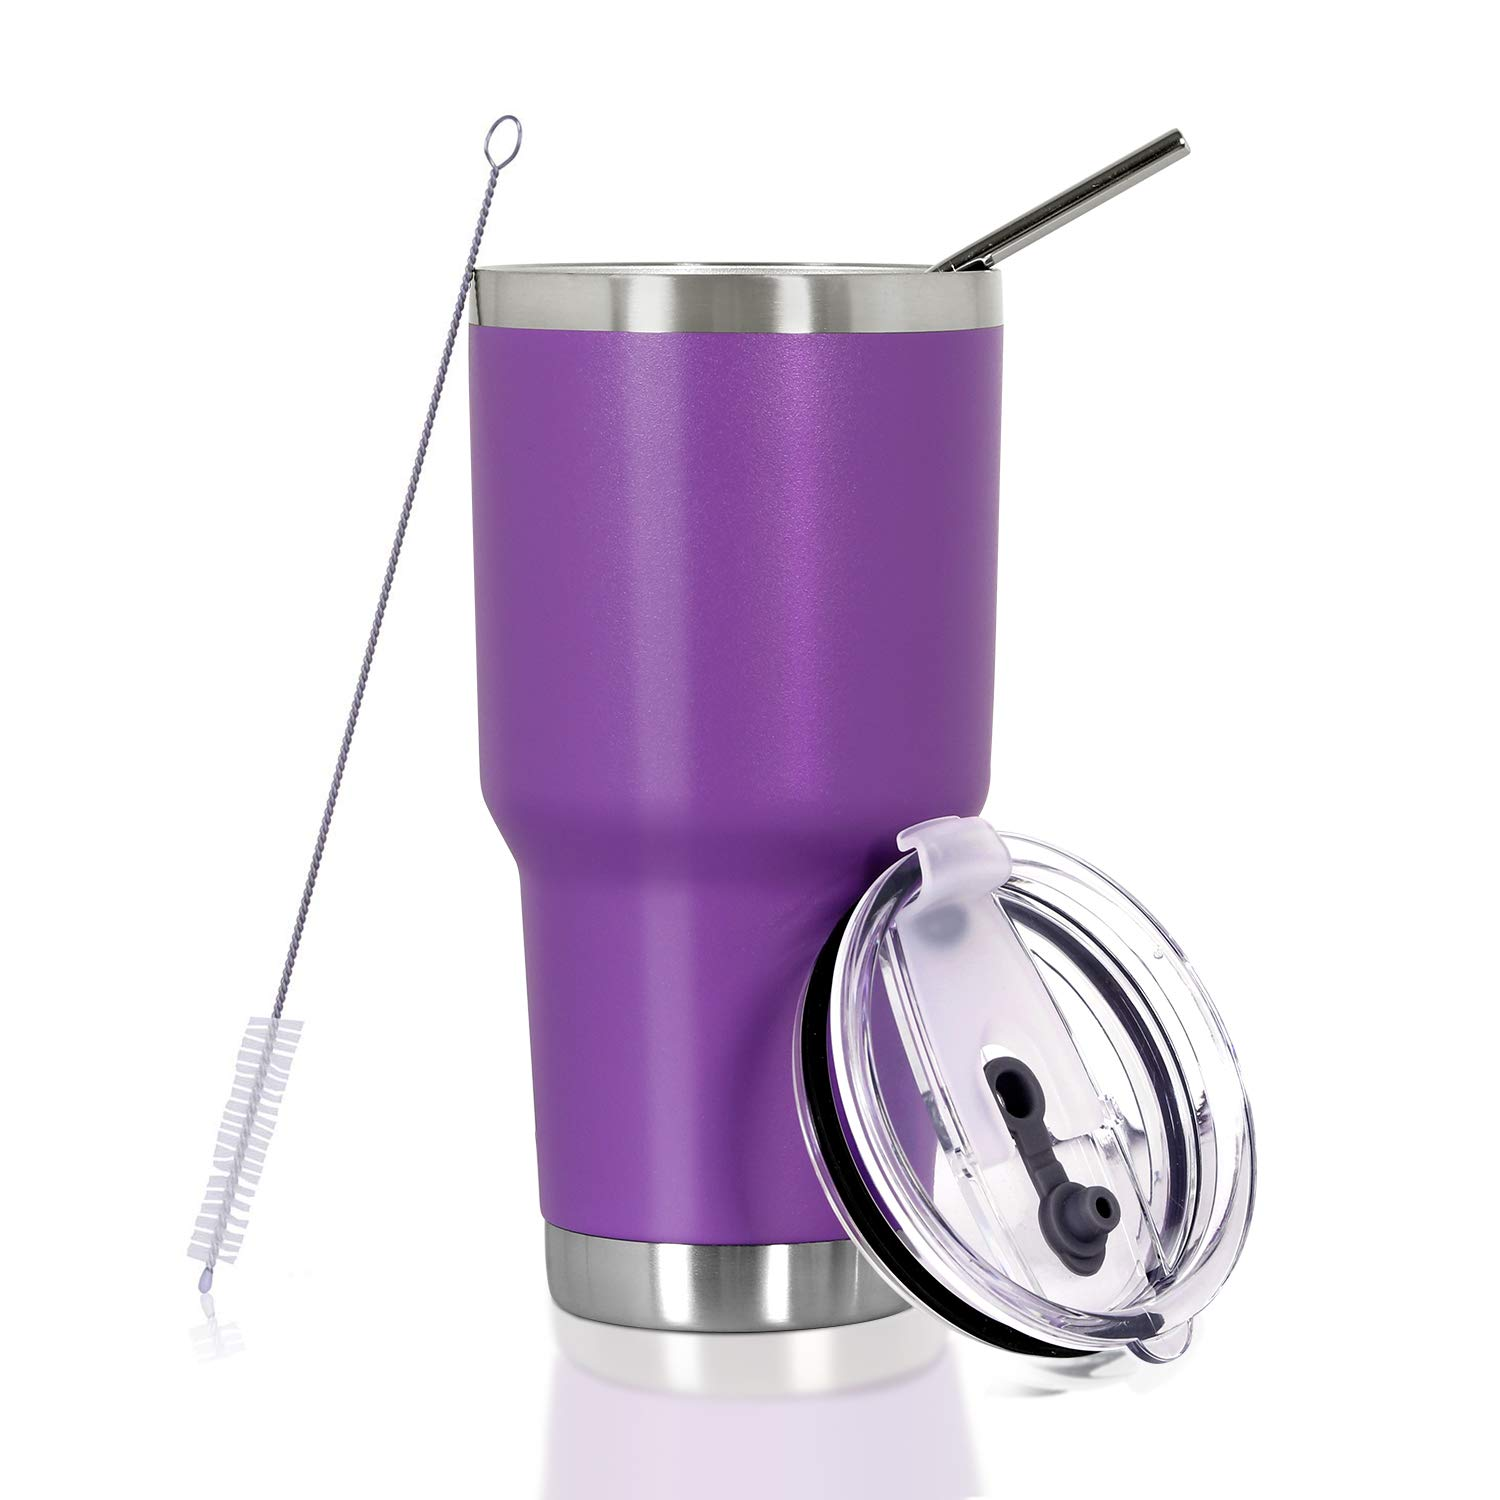 30 oz. Tumbler Double Wall Stainless Steel Vacuum Insulation Travel Mug with Crystal Clear Lid and Straw, Water Coffee Cup for Home,Office,School, Ice Drink, Hot Beverage,Purple